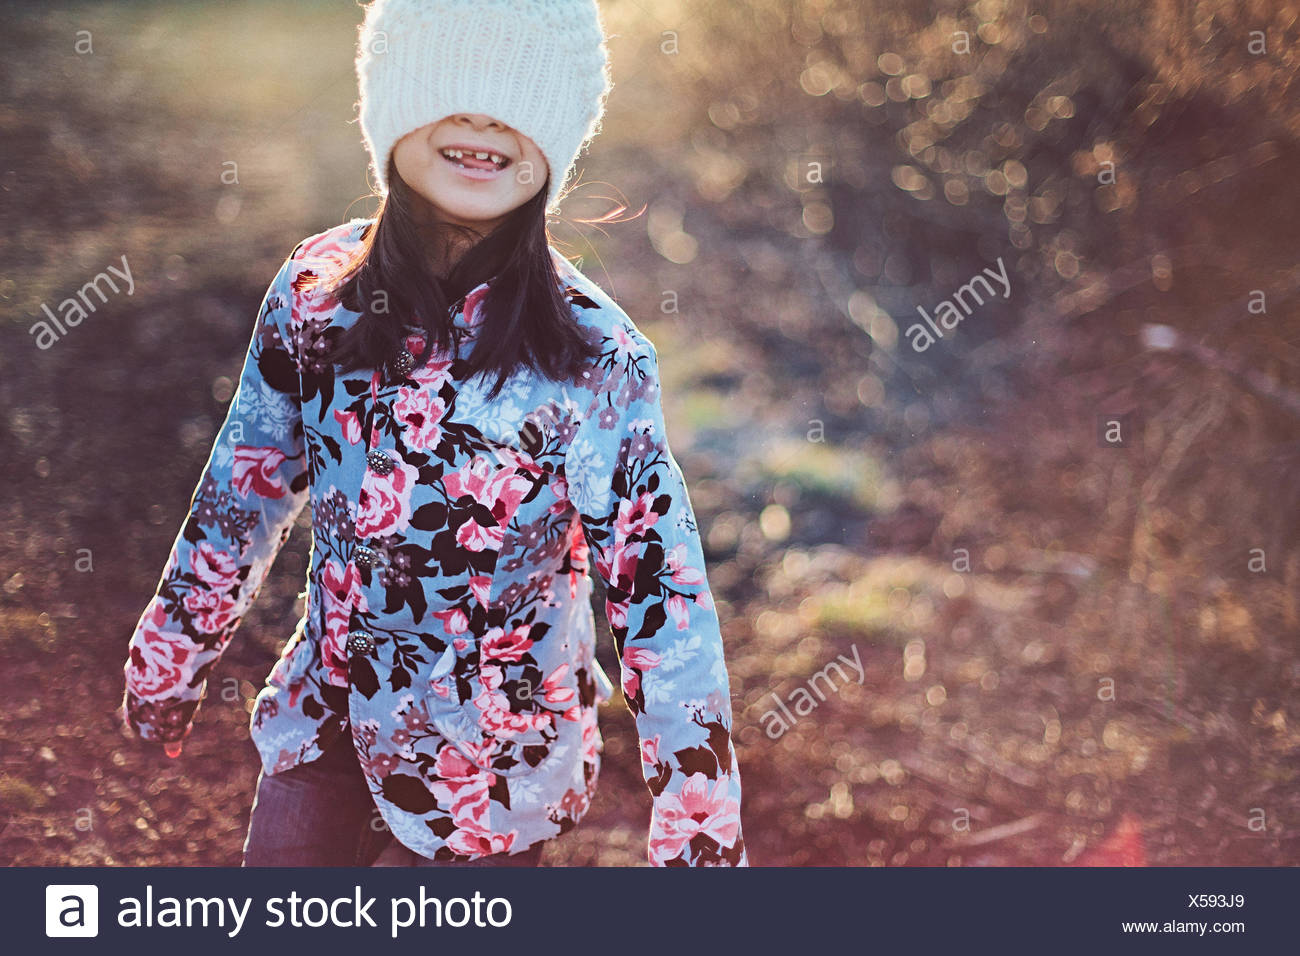 Girl (8-9) covering face with white winter hat - Stock Image